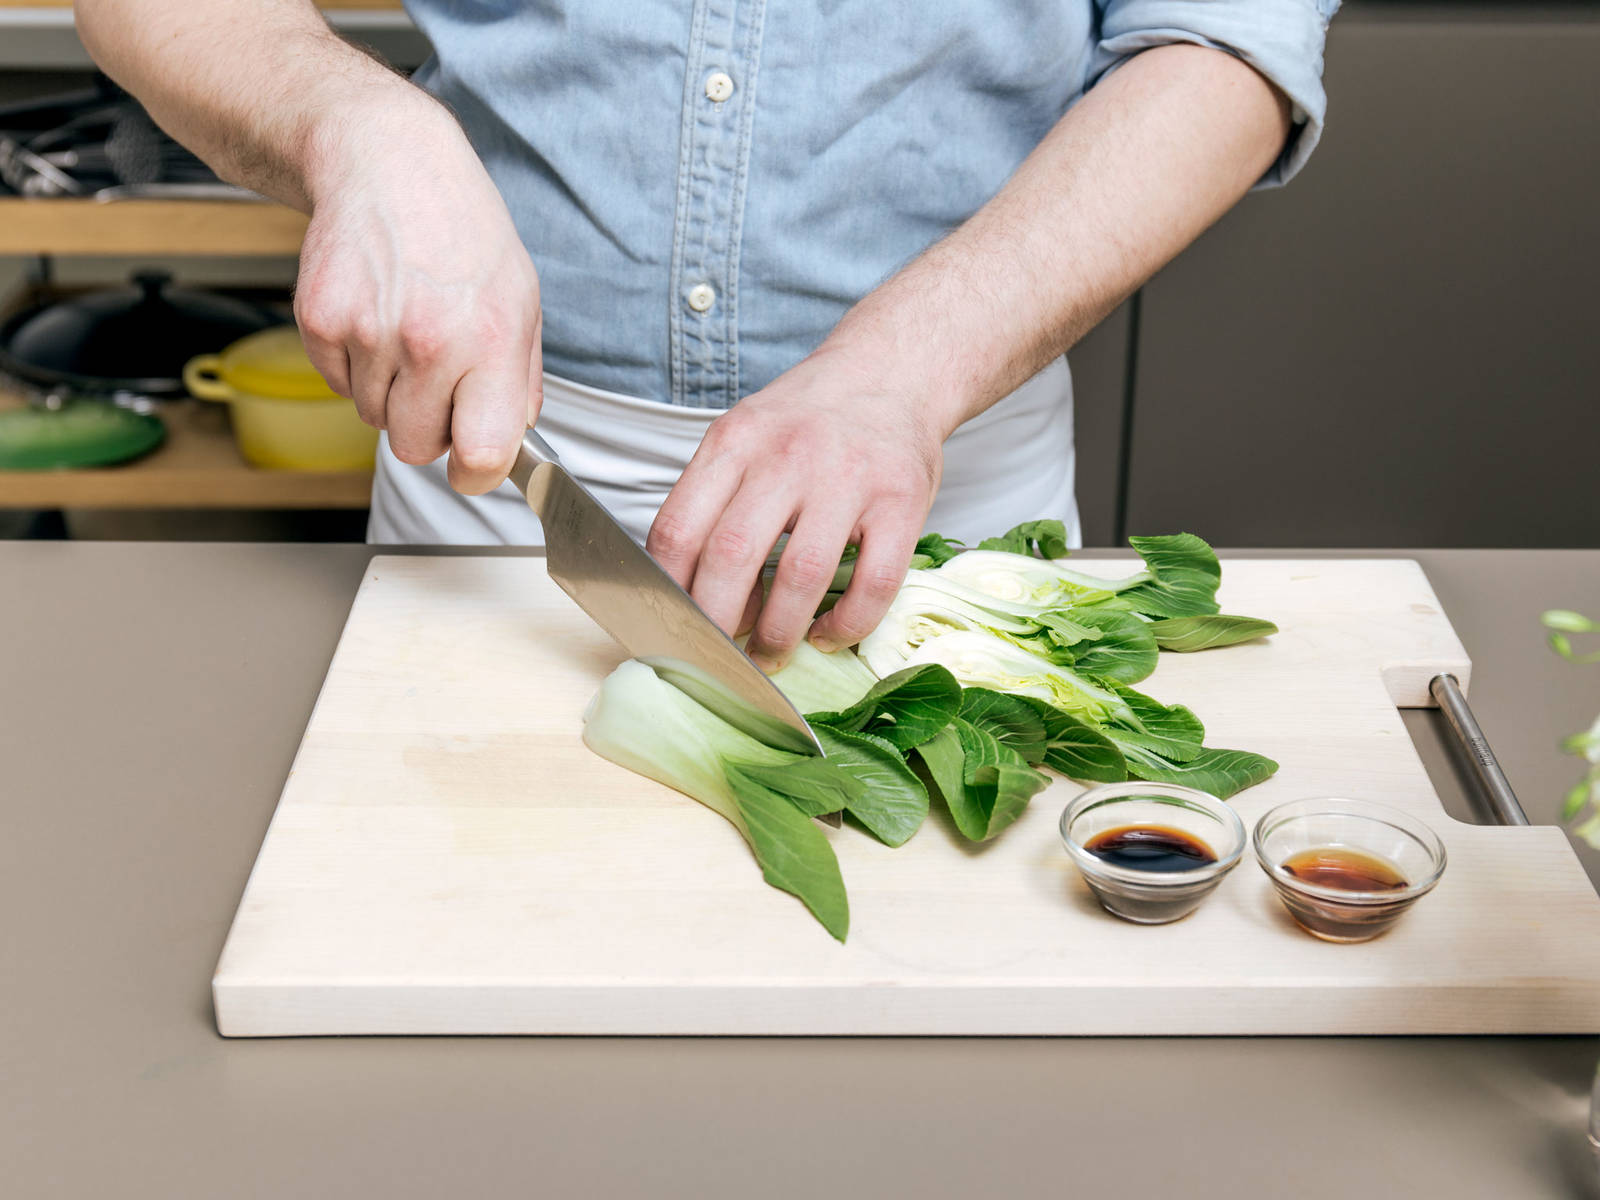 Trim ends of bok choy, then halve. Heat sesame oil in large frying pan over medium-high heat. Sear bok choy for approx. 4 min. Add soy sauce and a ladle of poaching liquid from saucepan and let stew.